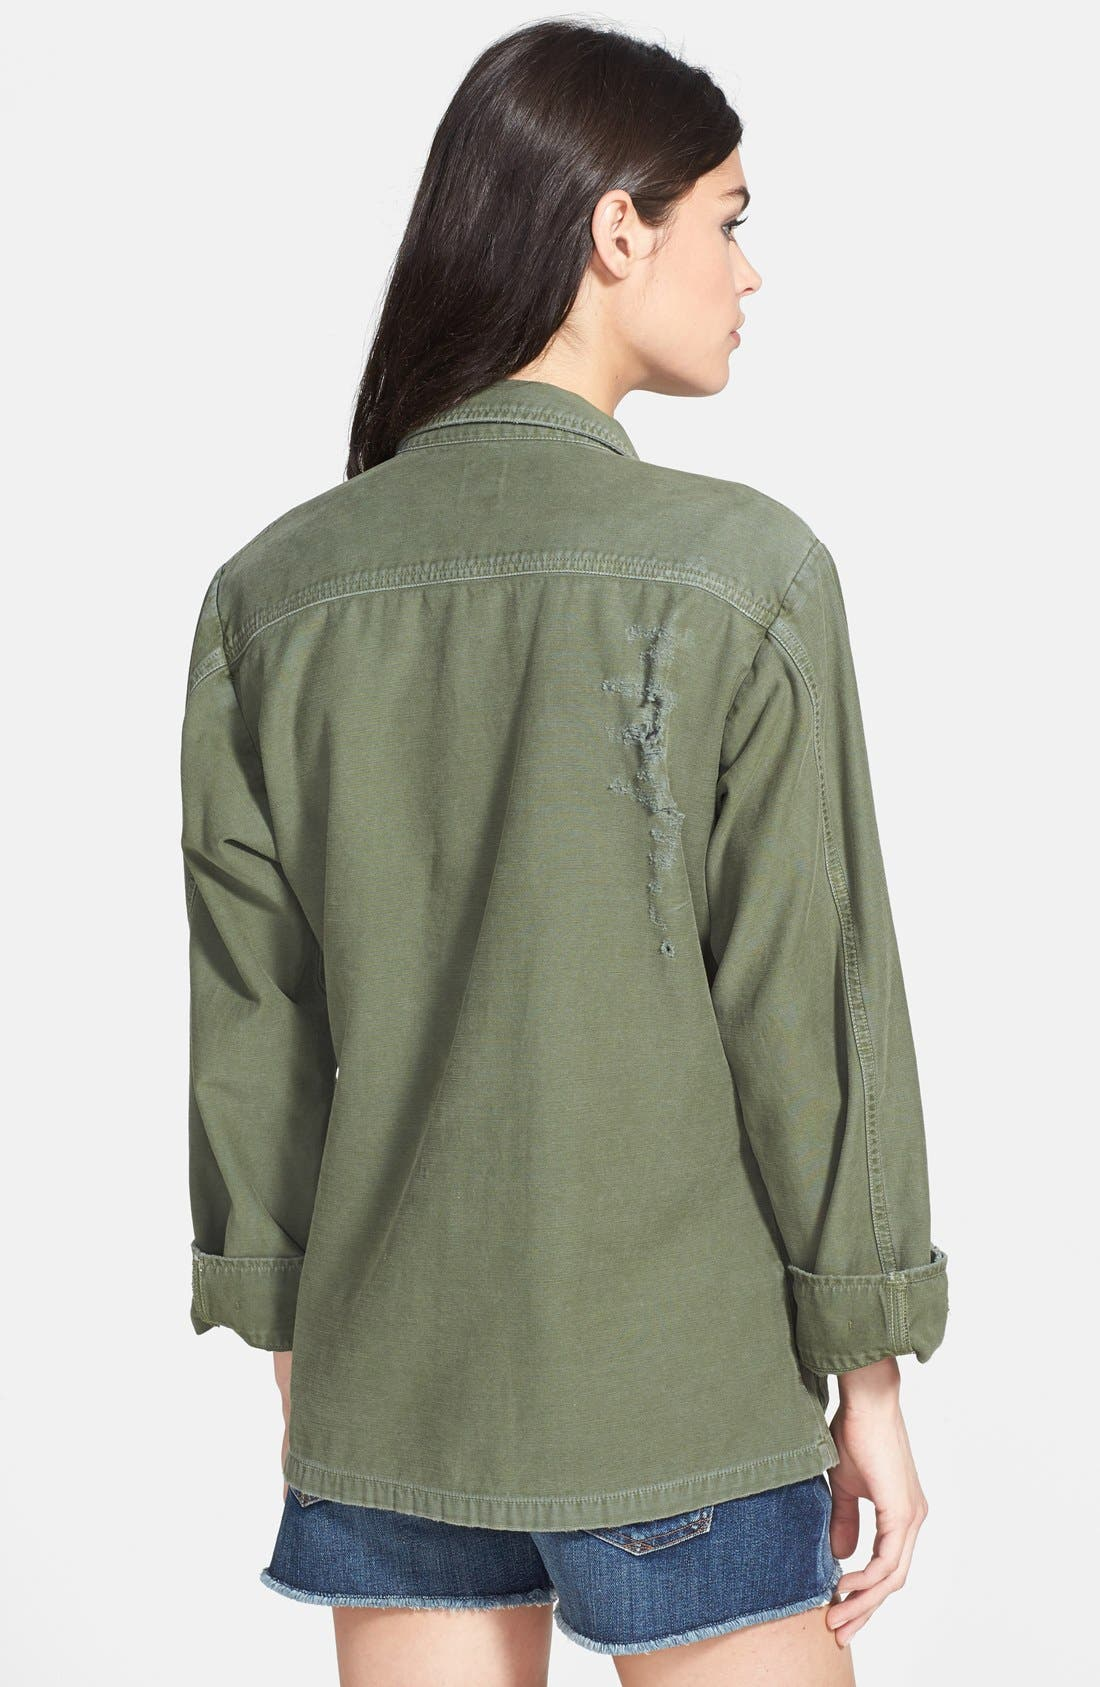 CITIZENS OF HUMANITY,                             'Kylie' Distressed Military Jacket,                             Alternate thumbnail 2, color,                             369